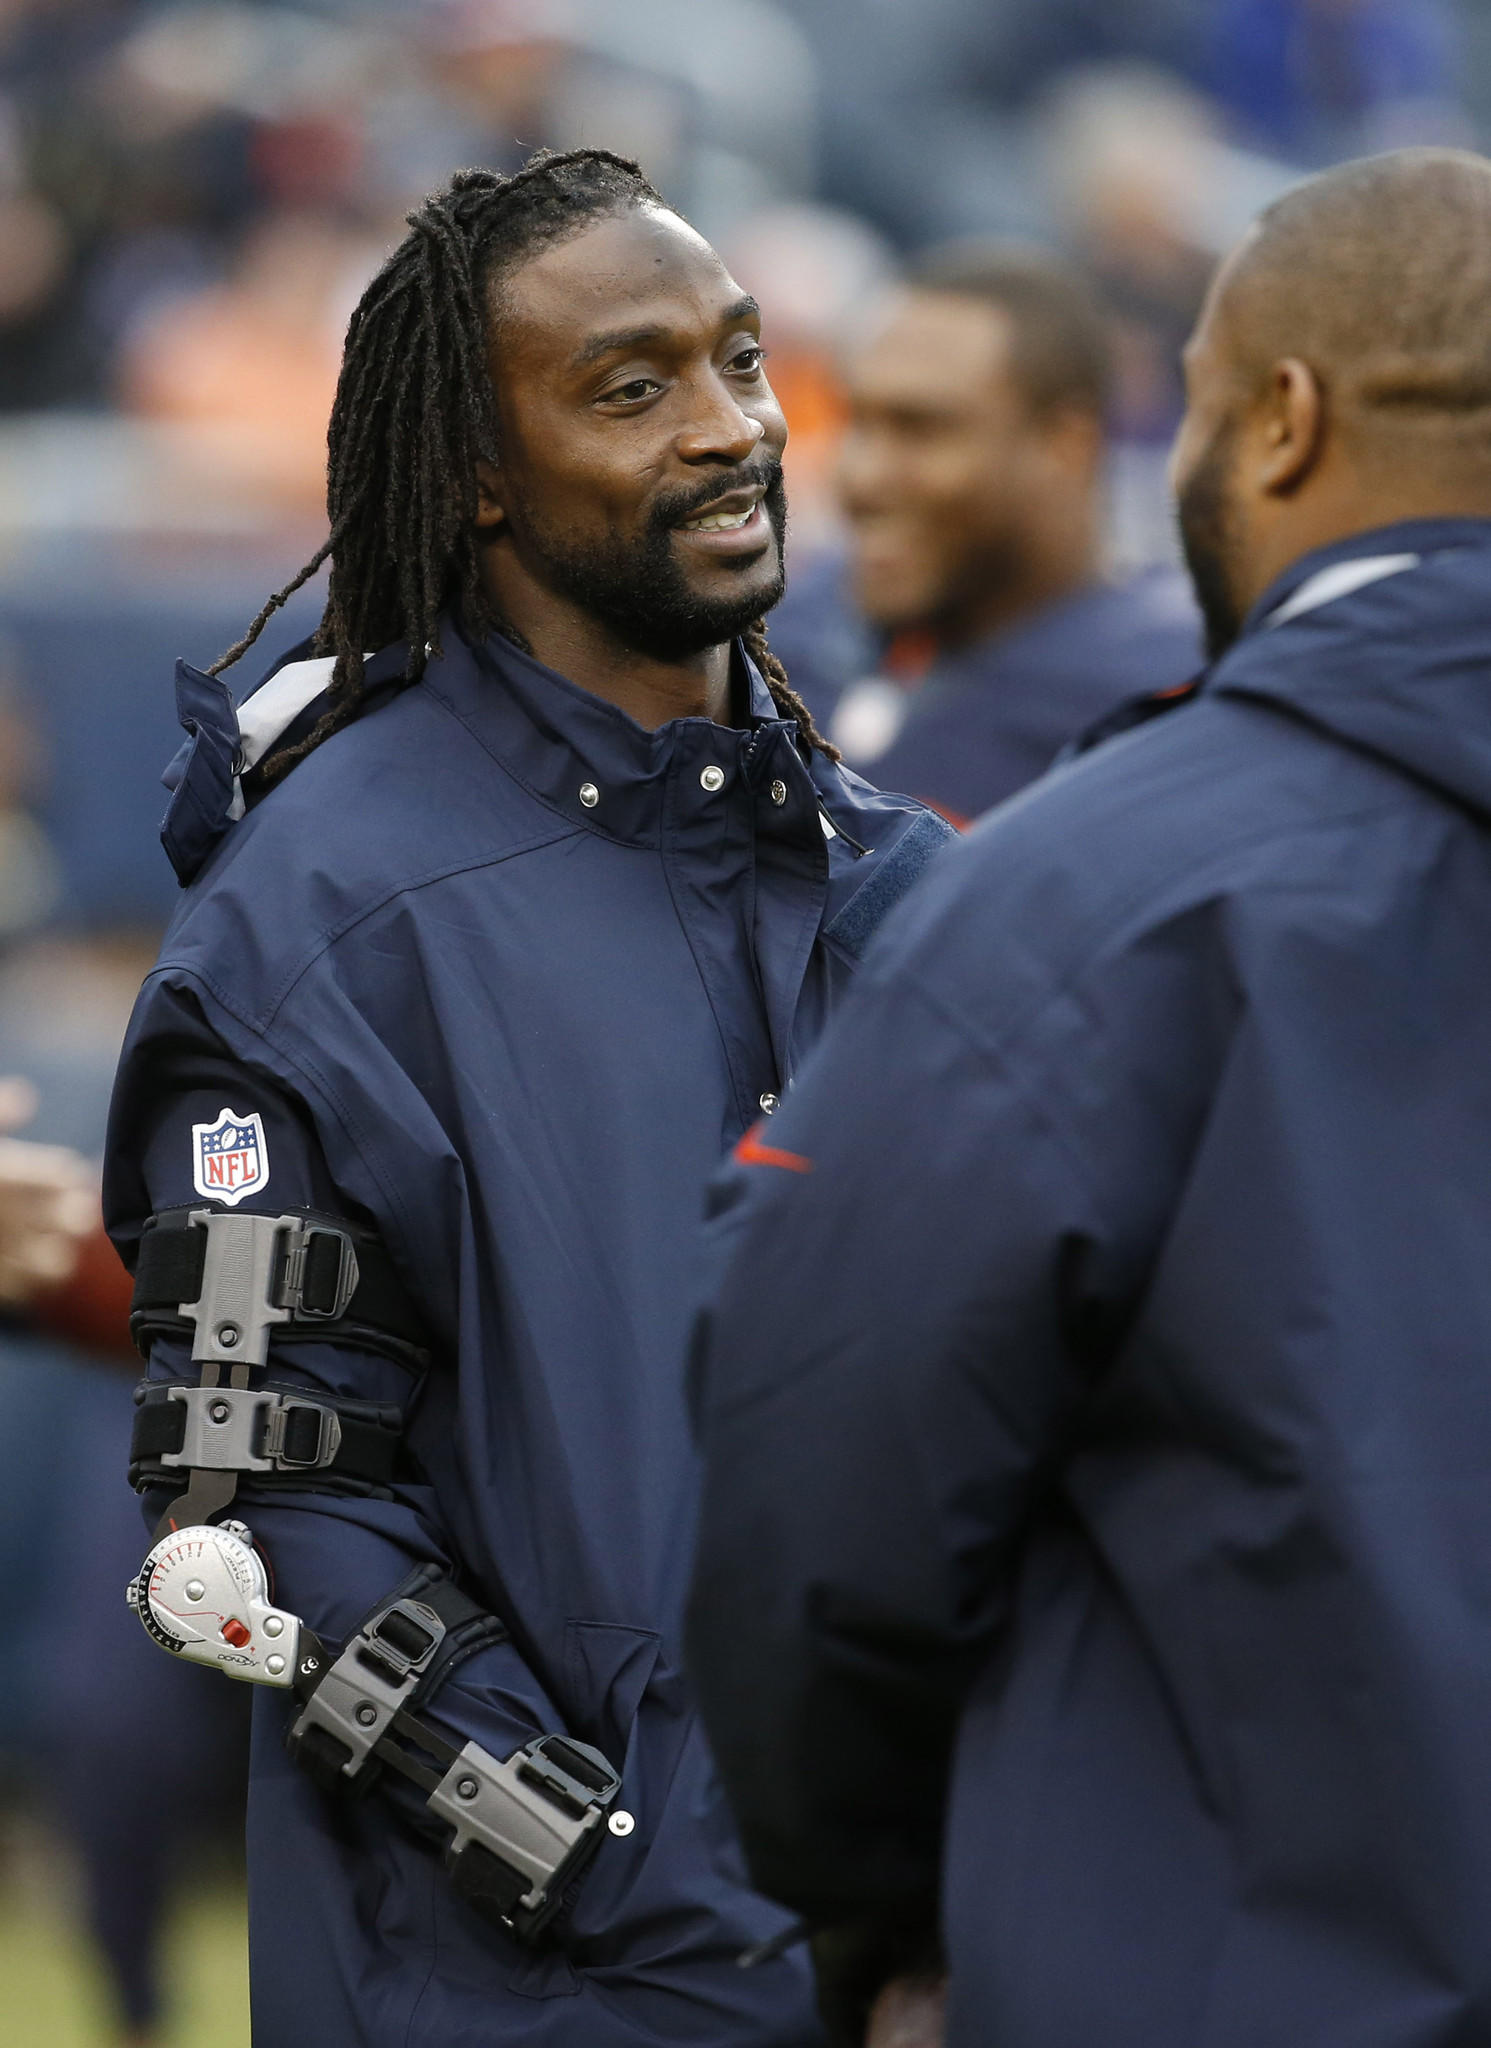 Injured Chicago Bears cornerback Charles Tillman (33) chats with injured Chicago Bears outside linebacker Lance Briggs (55) on the field during pre-game warm ups before a game against the Baltimore Ravens at Soldier Field in Chicago on Sunday, Nov. 17, 2013.